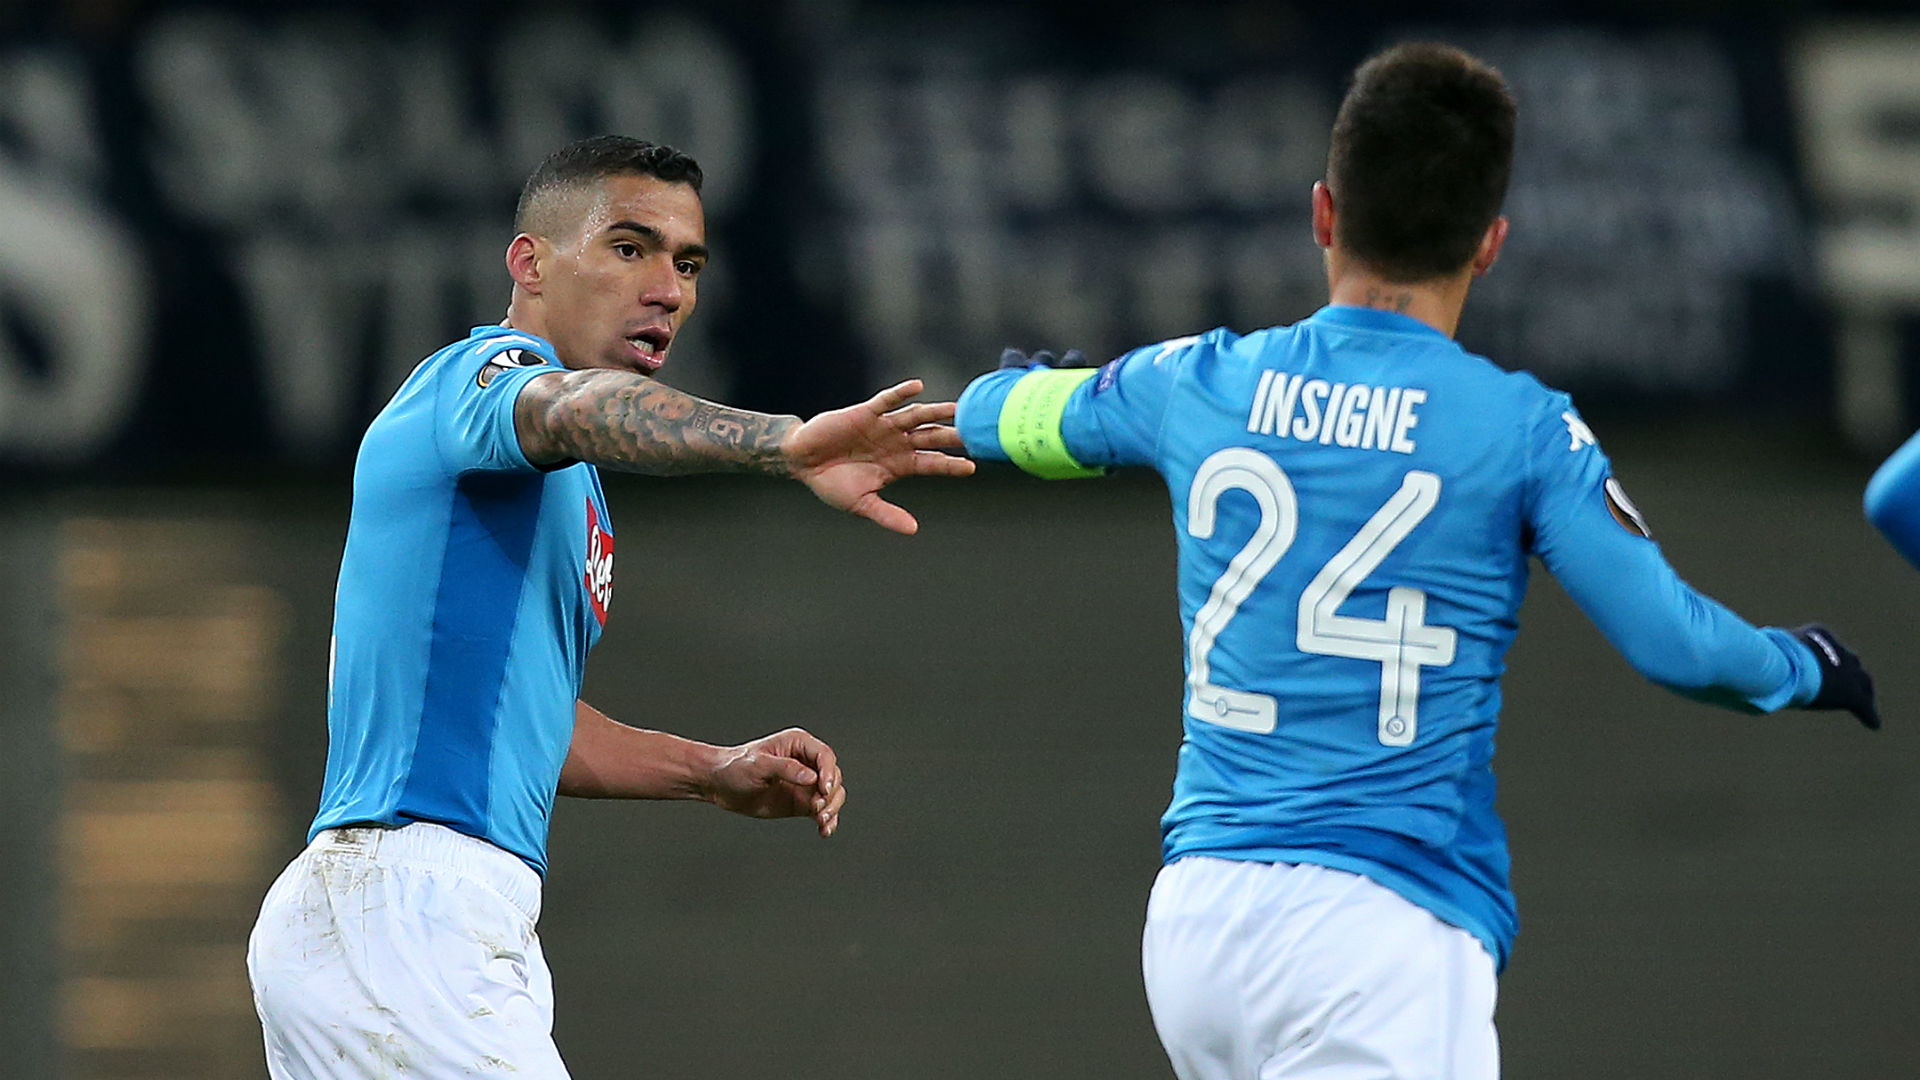 First big hoax of the season - Napoli shut down Allan & Insigne sale rumours